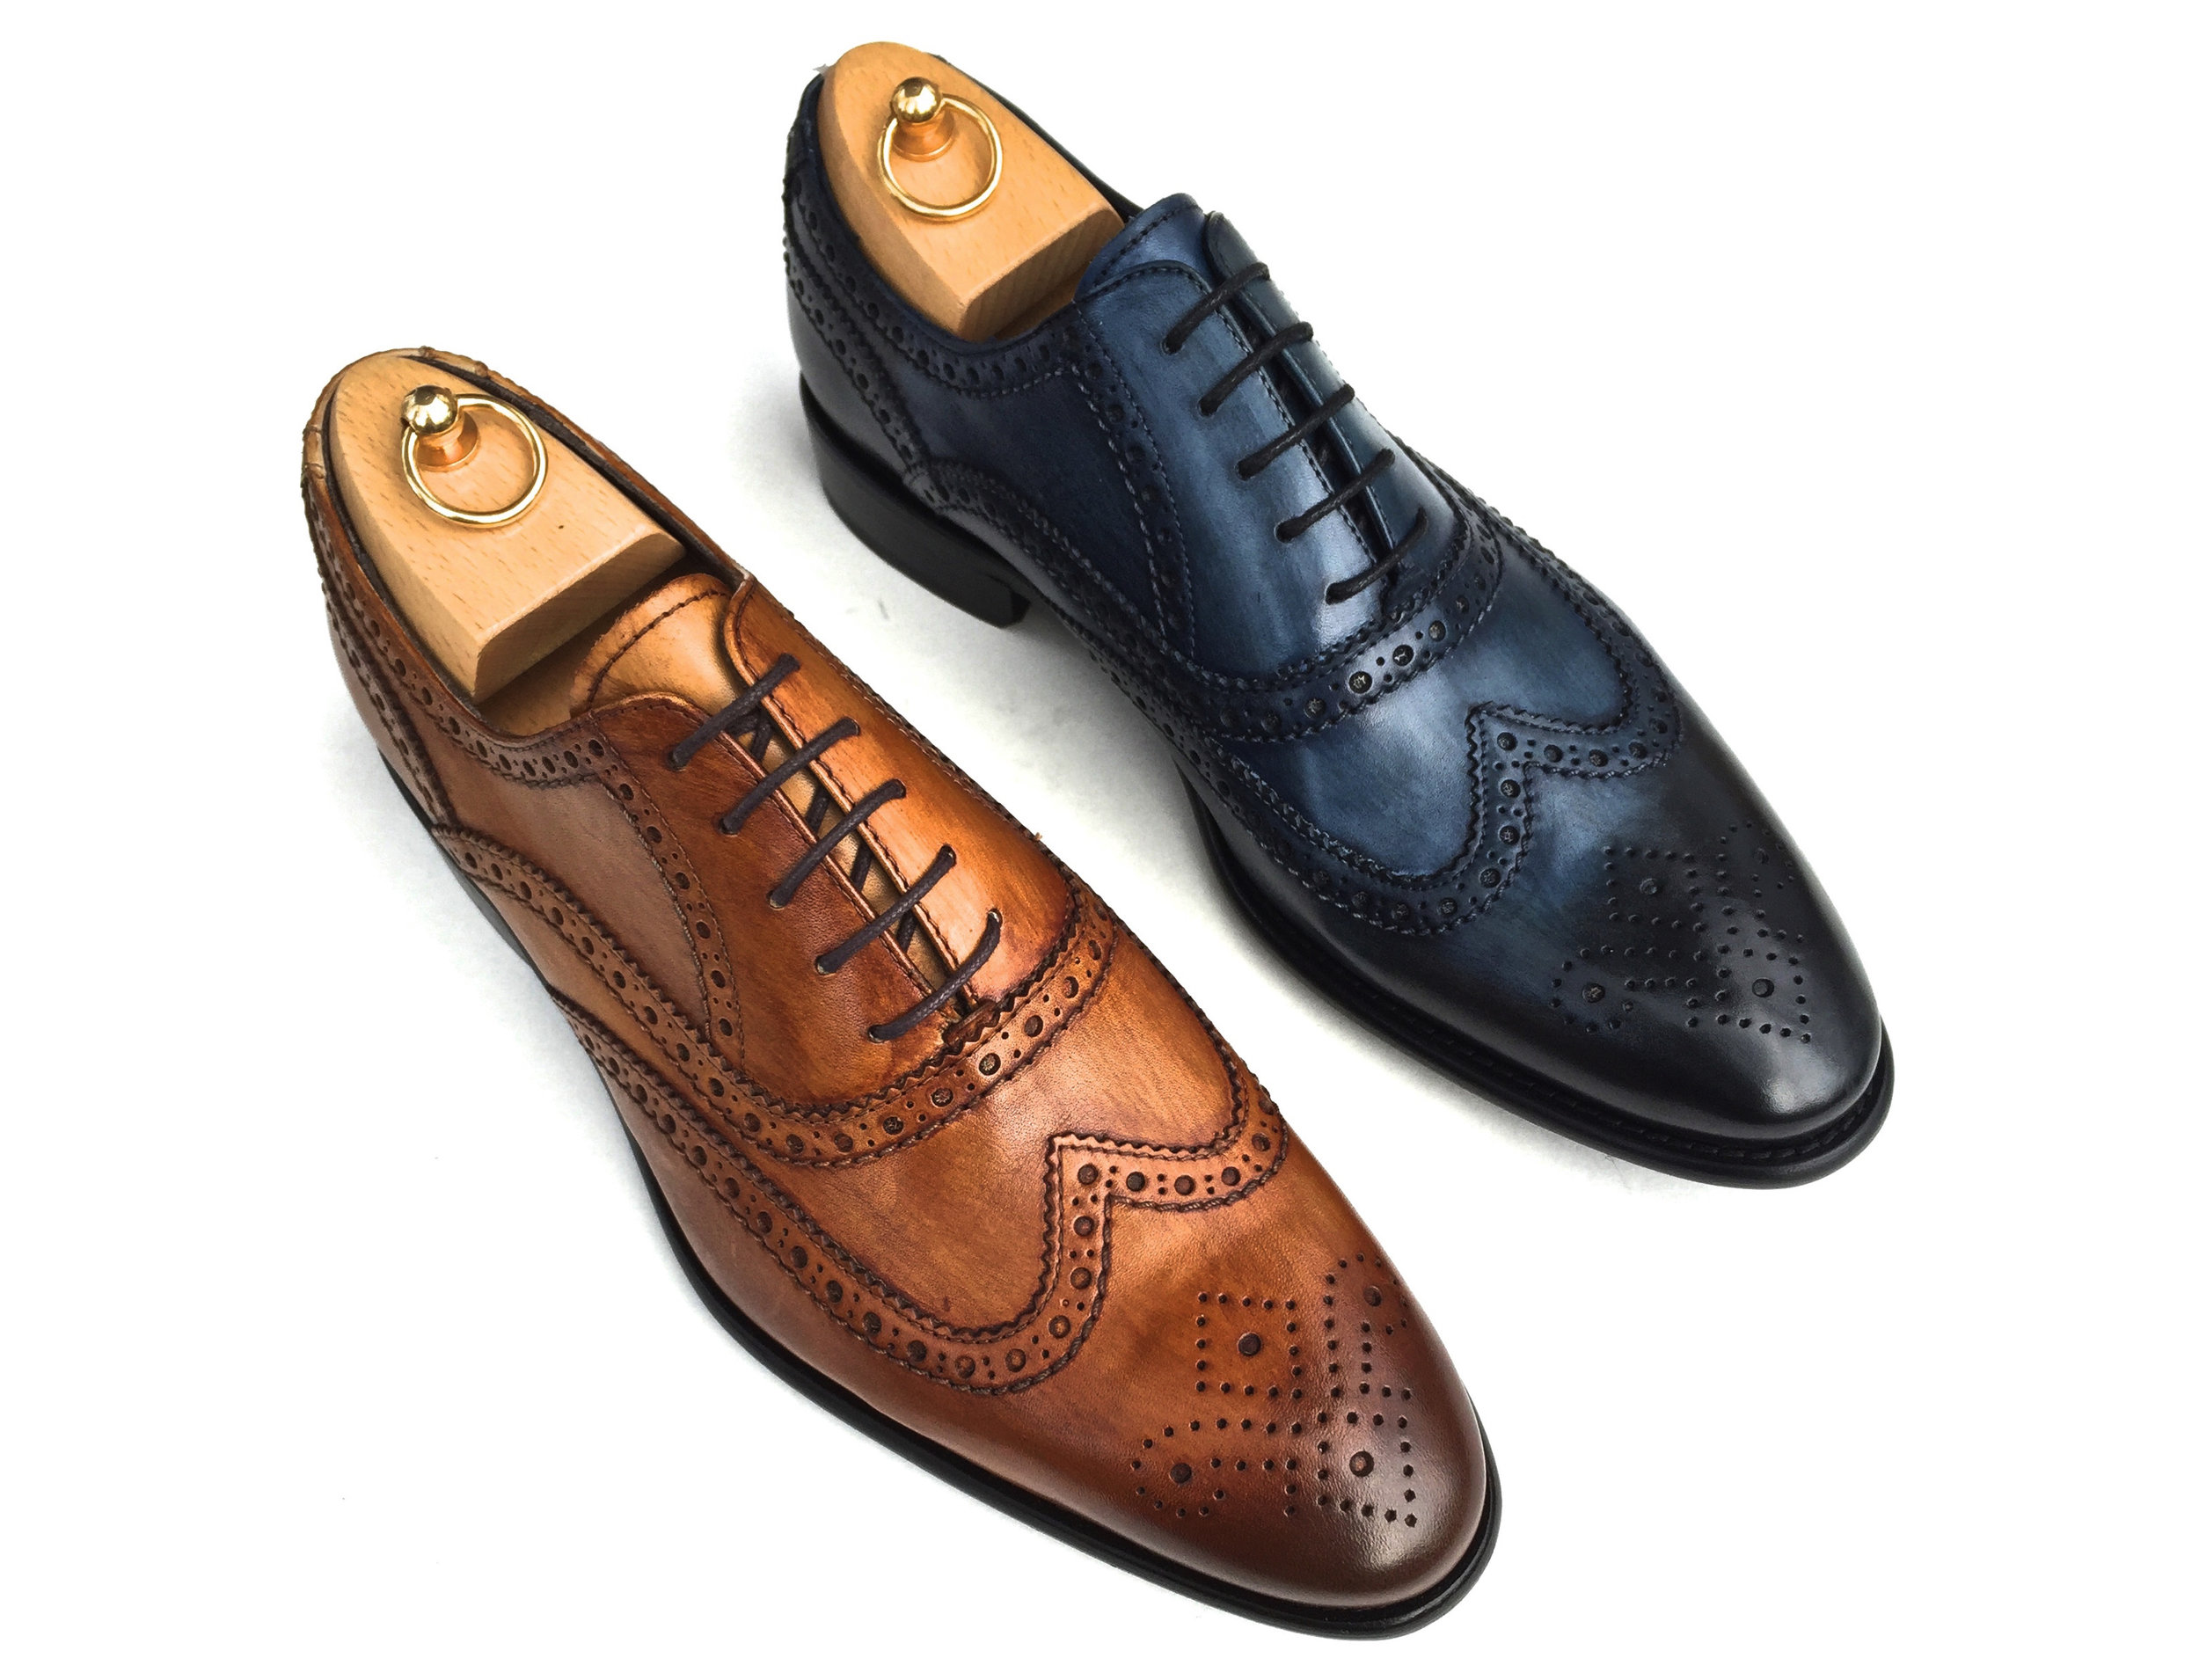 Style # 1972: Chestnut, Ocean  Hand-painted Cayenne Calf Oxford  Sizes available: 7 to 14 US, including half sizes